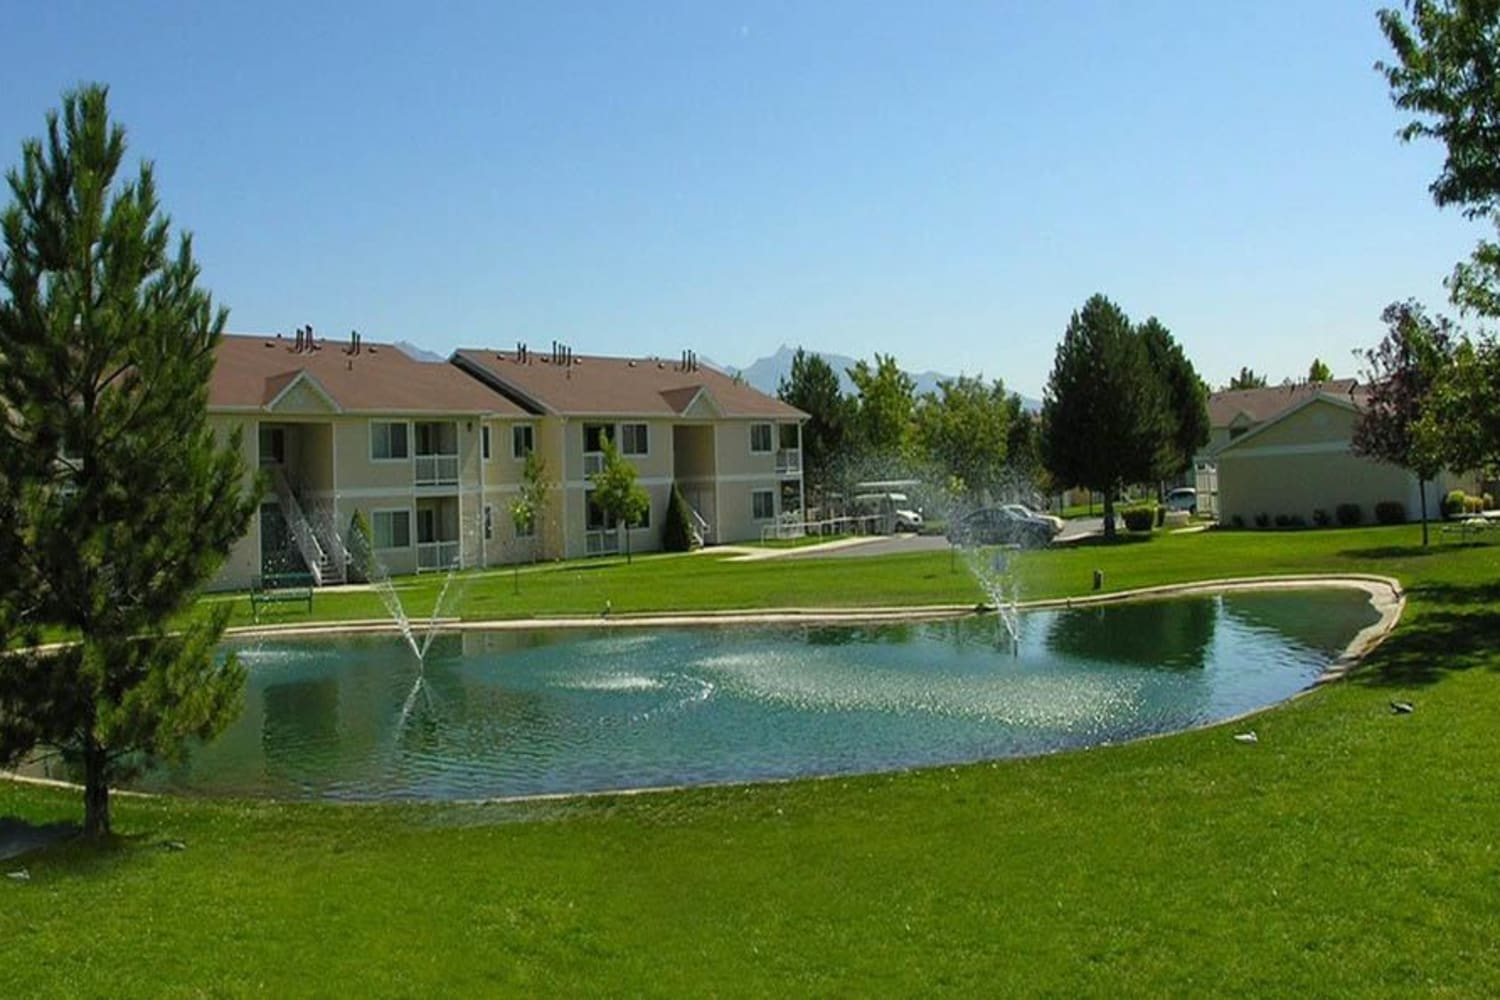 Community pond at Lakeside Village Apartments in Salt Lake City, Utah